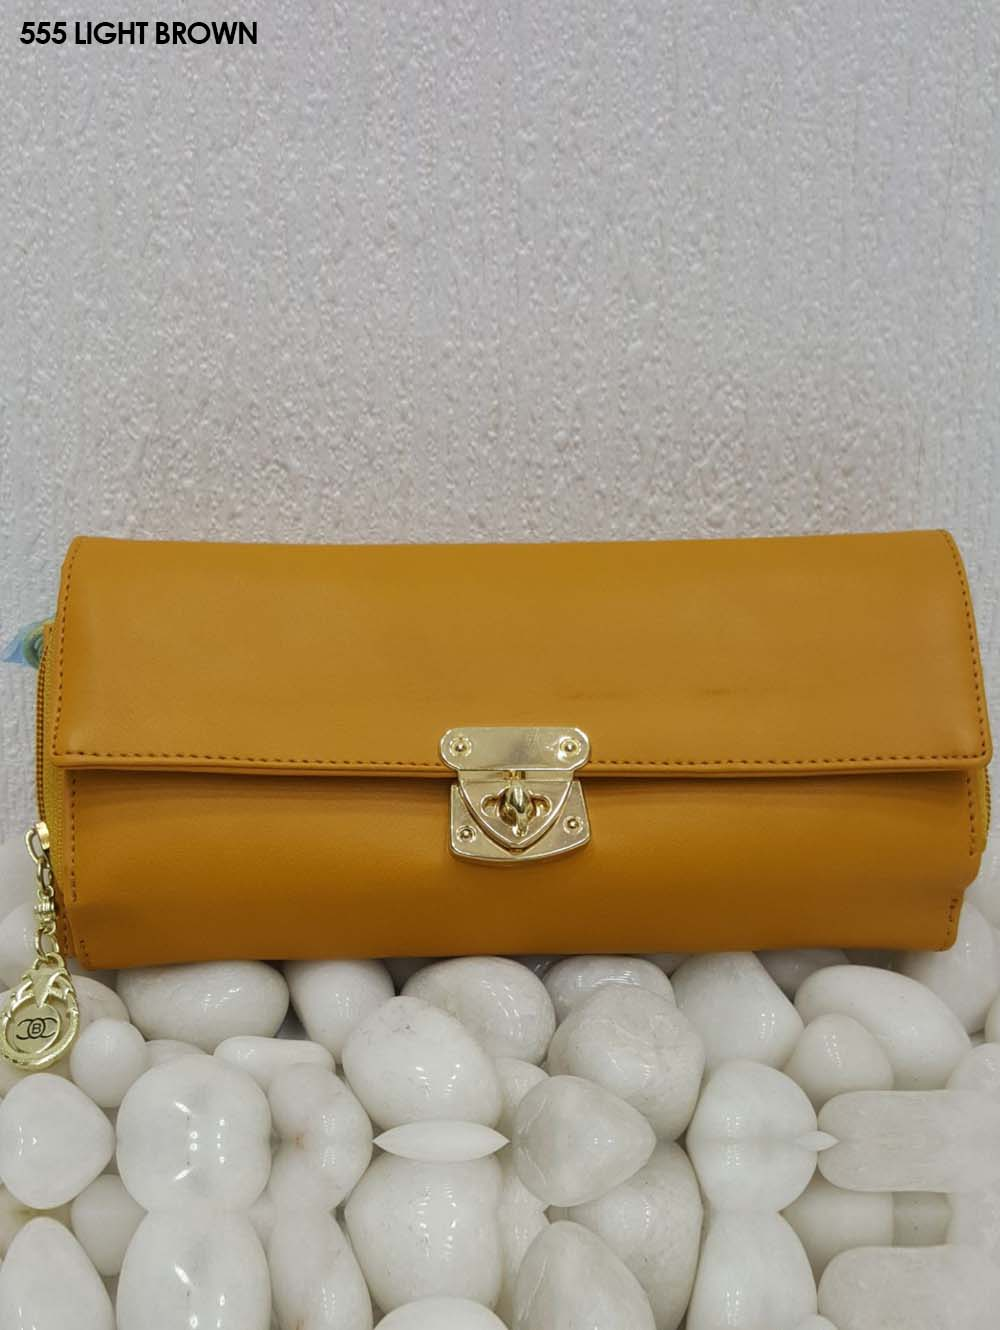 Light Brown Stylish Women Clutch